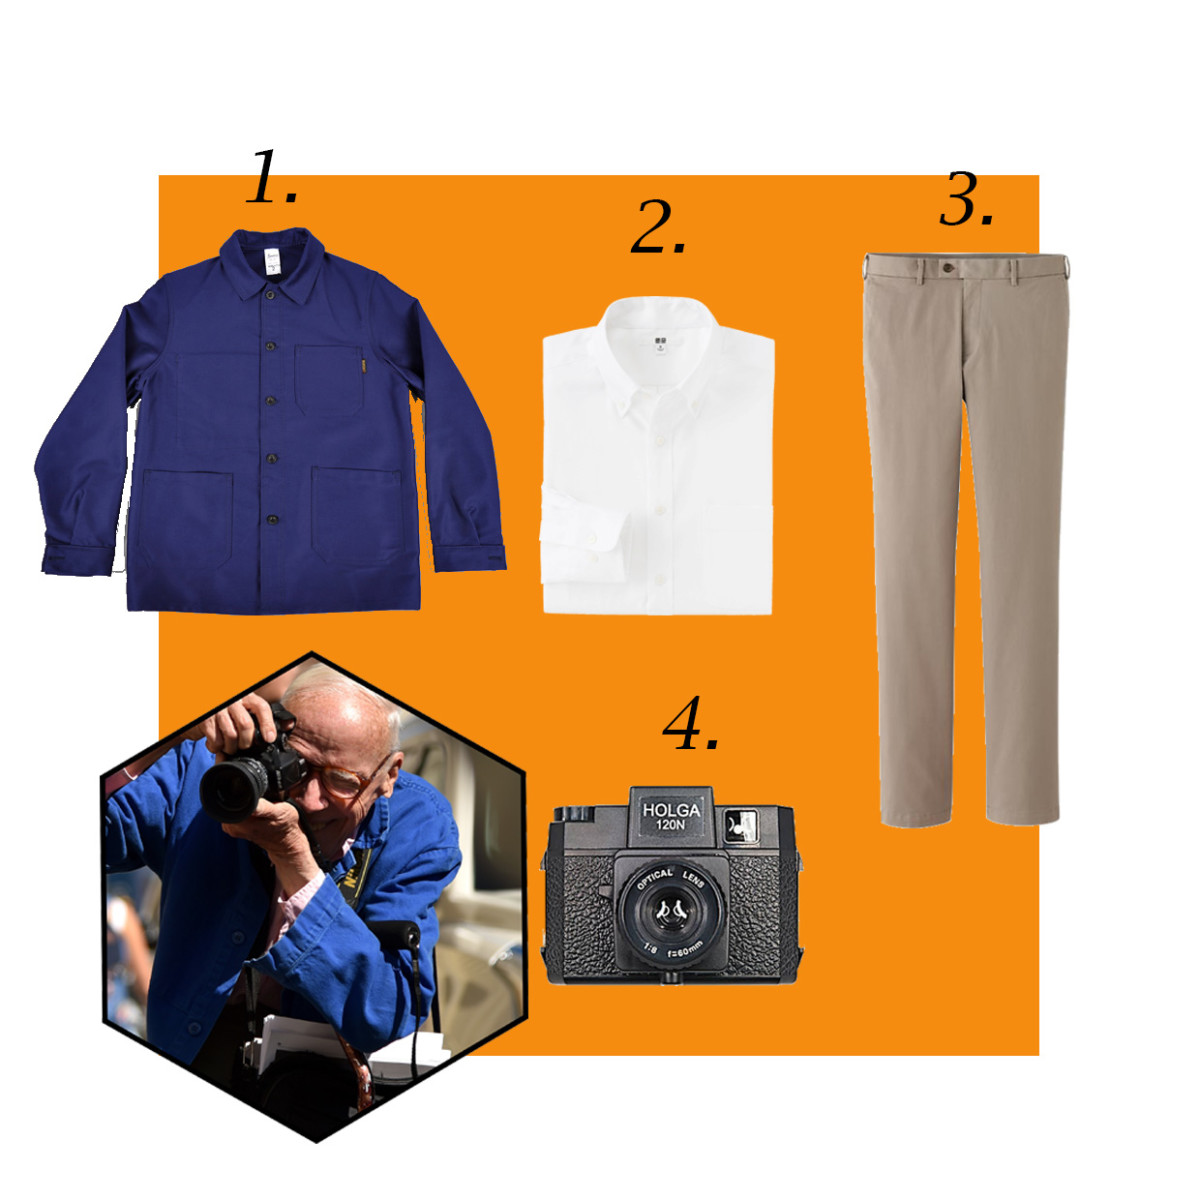 1. Le Labourer French work jacket, $150, available at Hickoree's; 2. Men's oxford shirt, $39.90, available at Uniqlo; 3. Uniqlo slim fit chino flat front pants, $29.90, available at Uniqlo; 4. Holga 120n medium format film camera, $34.99, available at B&H Photo. Photo: Mike Coppola/Getty Images